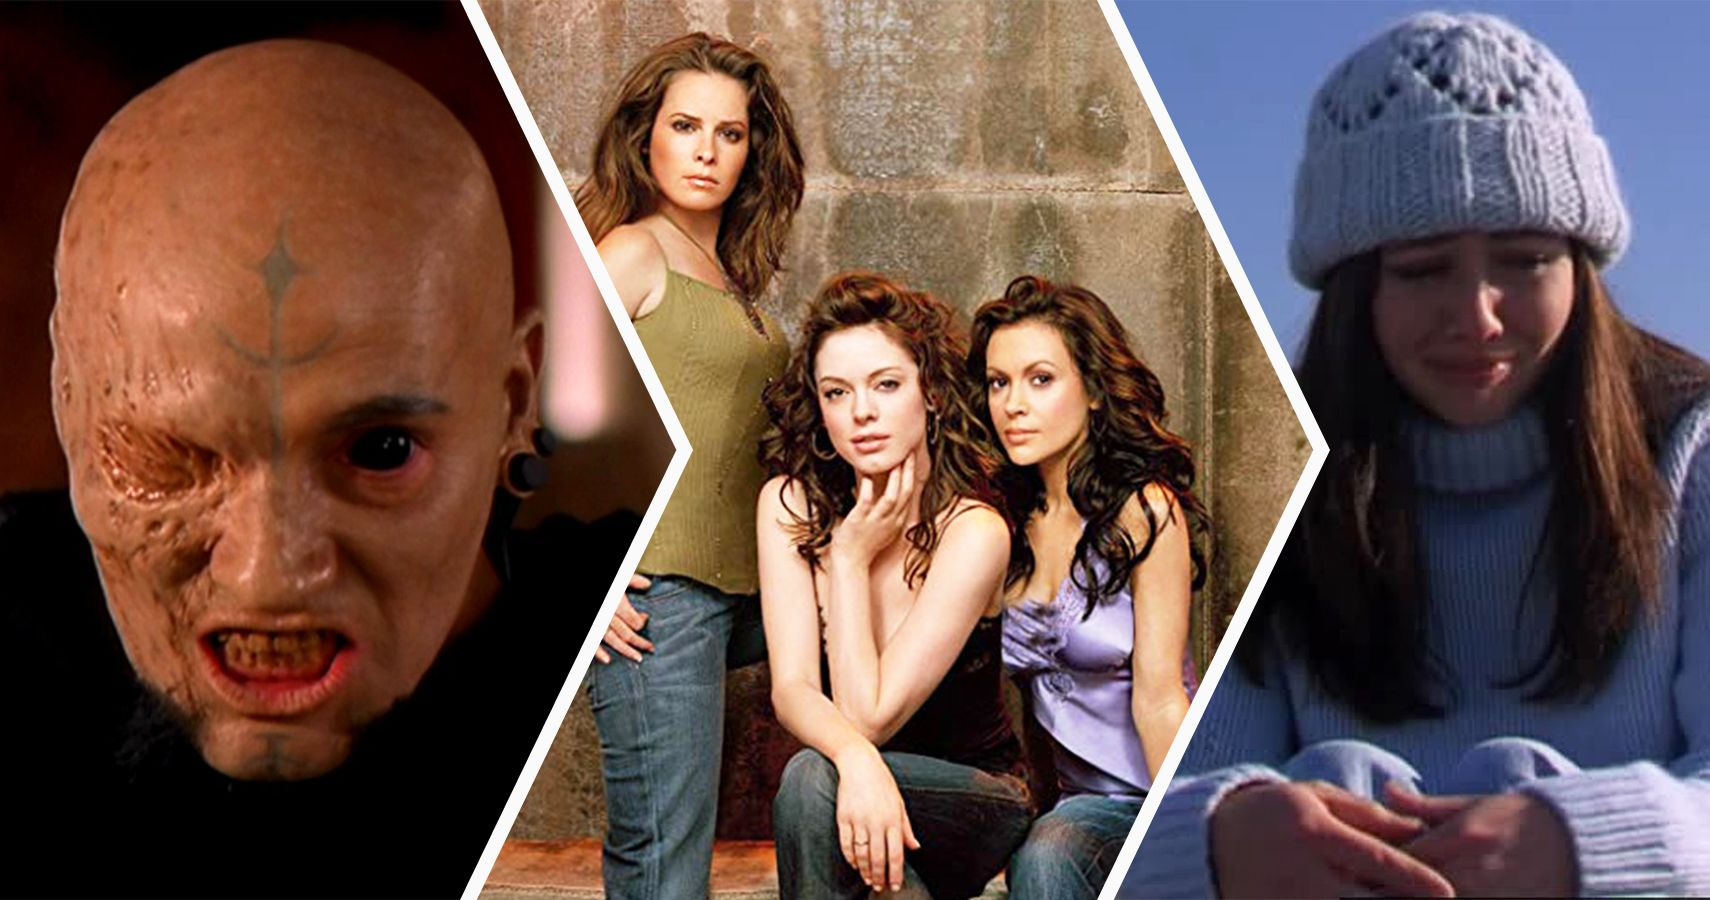 20 Things That Make No Sense About The Original Charmed